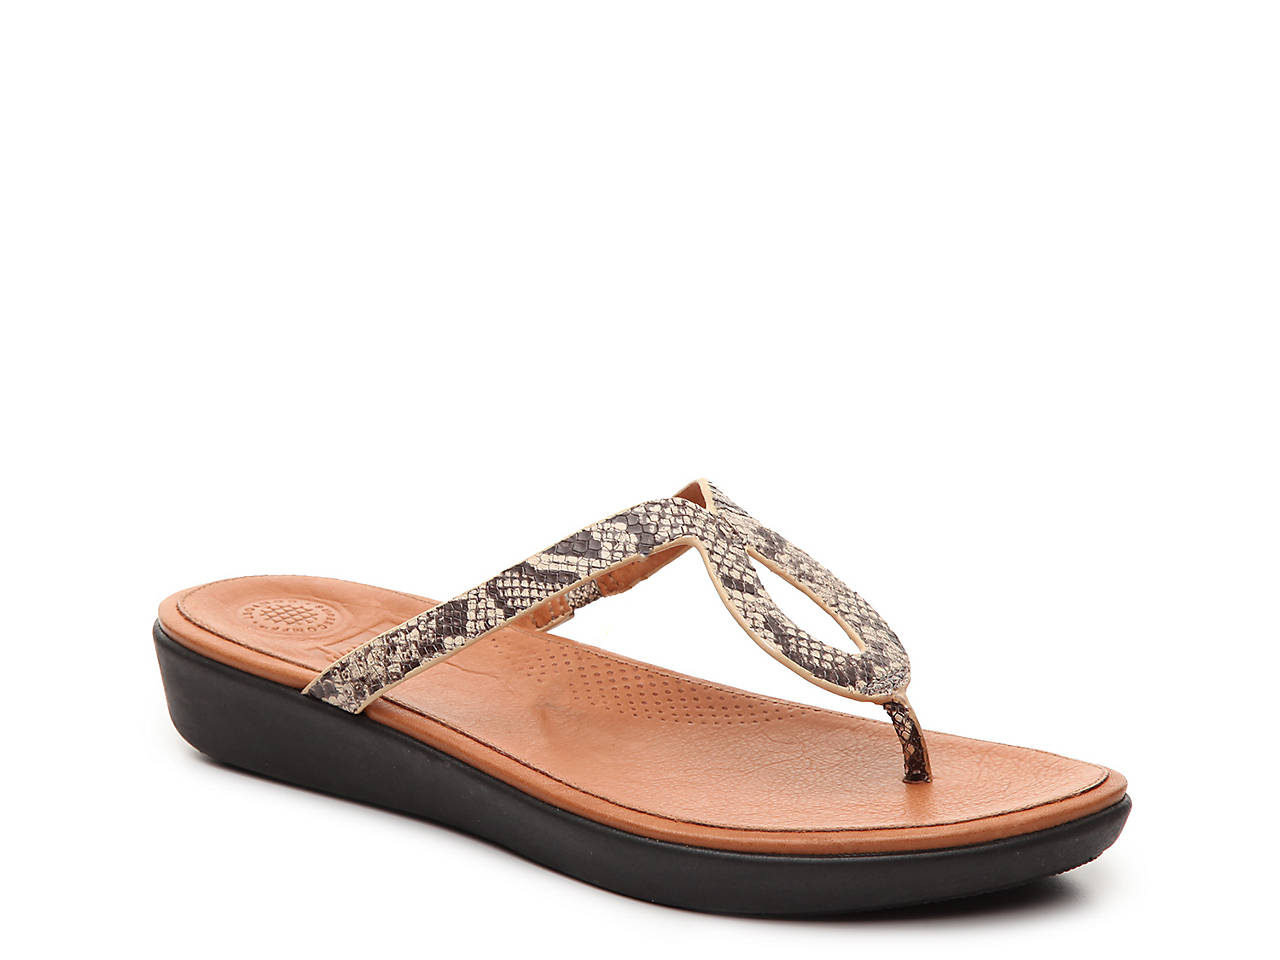 515e8099836c FitFlop Strata Wedge Sandal Women s Shoes